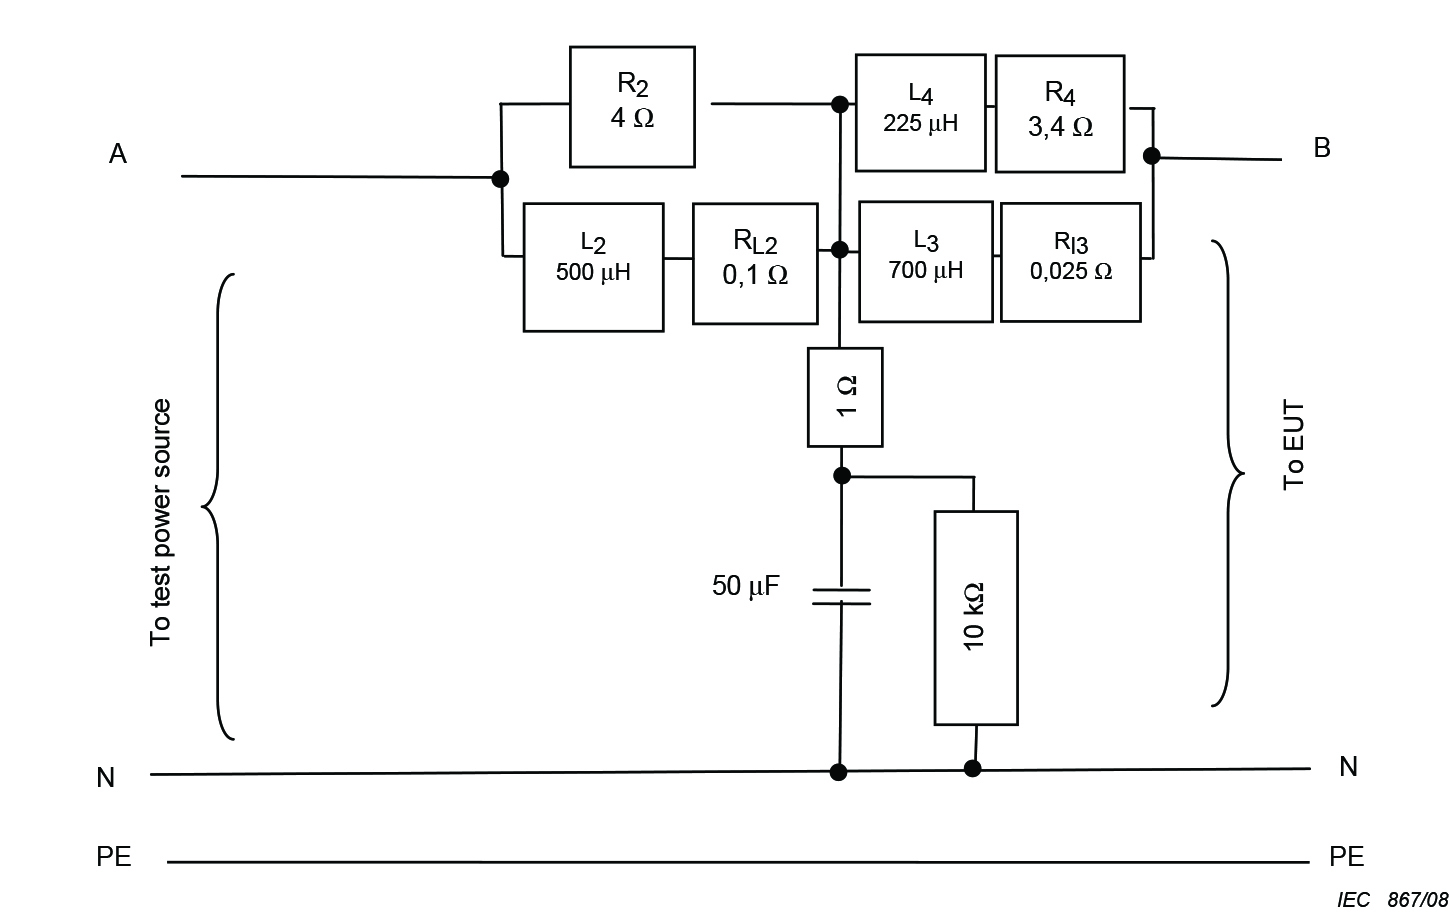 hight resolution of mains input filters what is inside the box and why interference technology